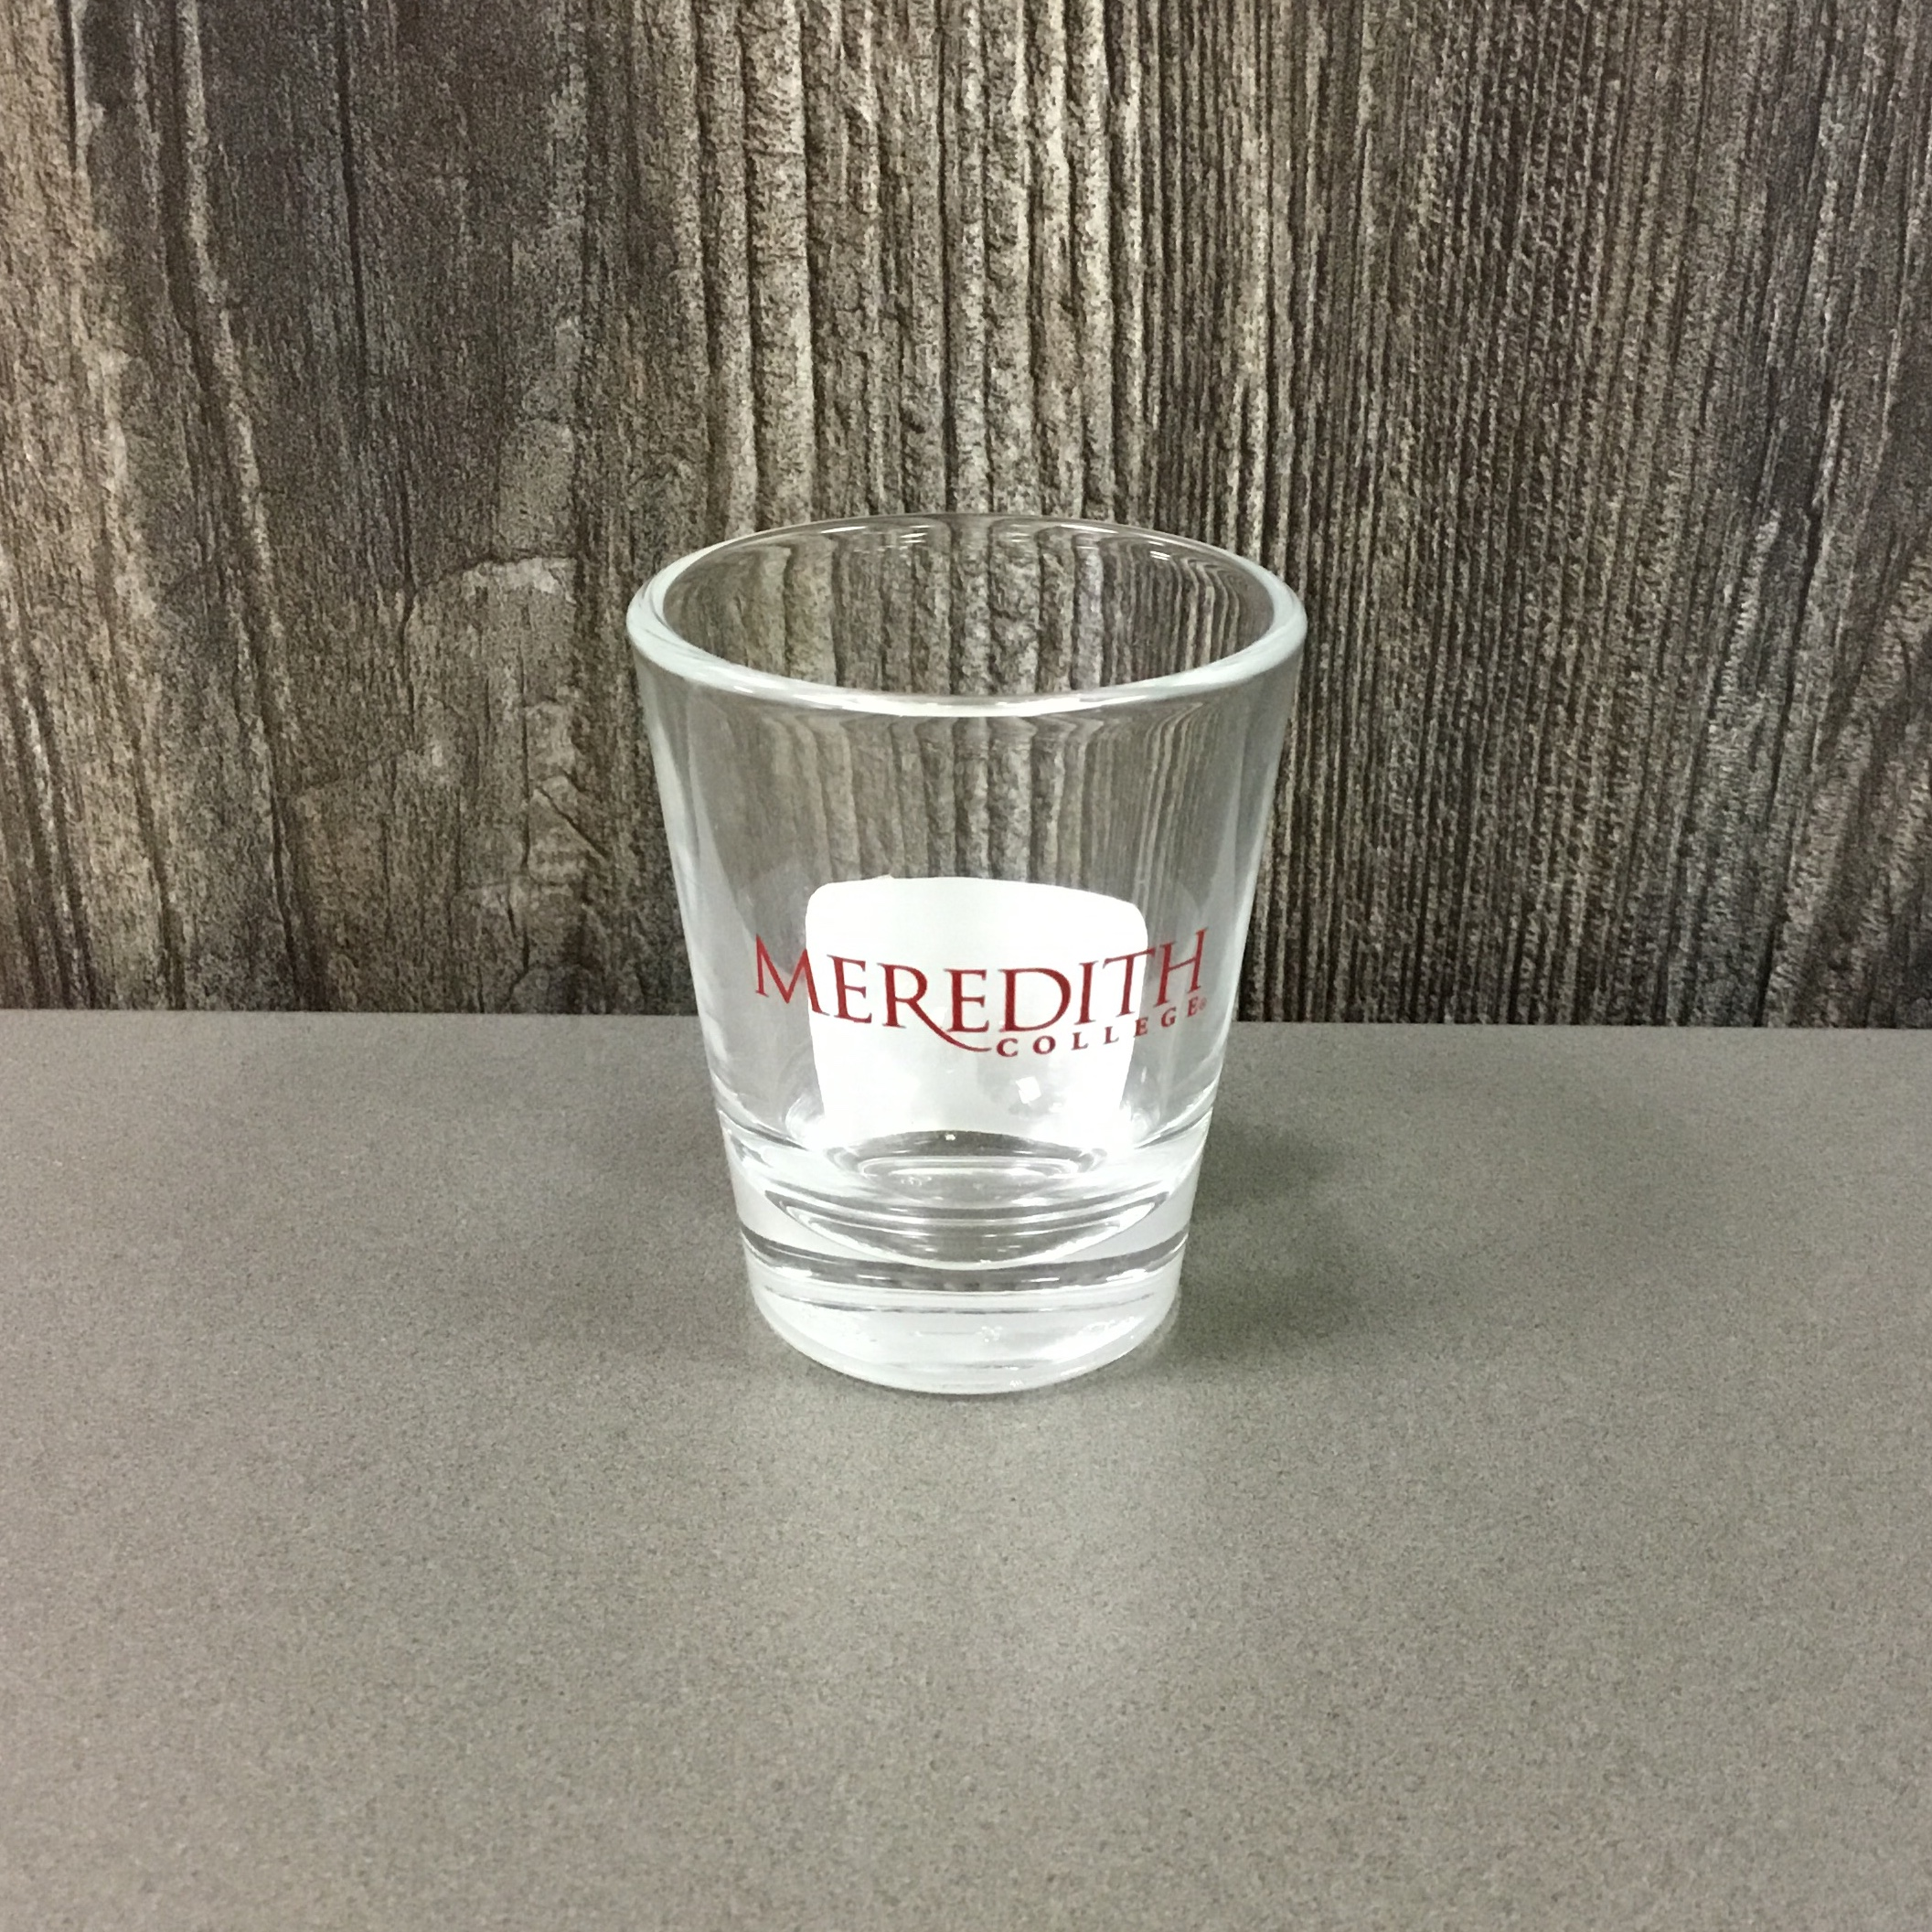 Image for the Tapered Shot Glass, Meredith College Logo product